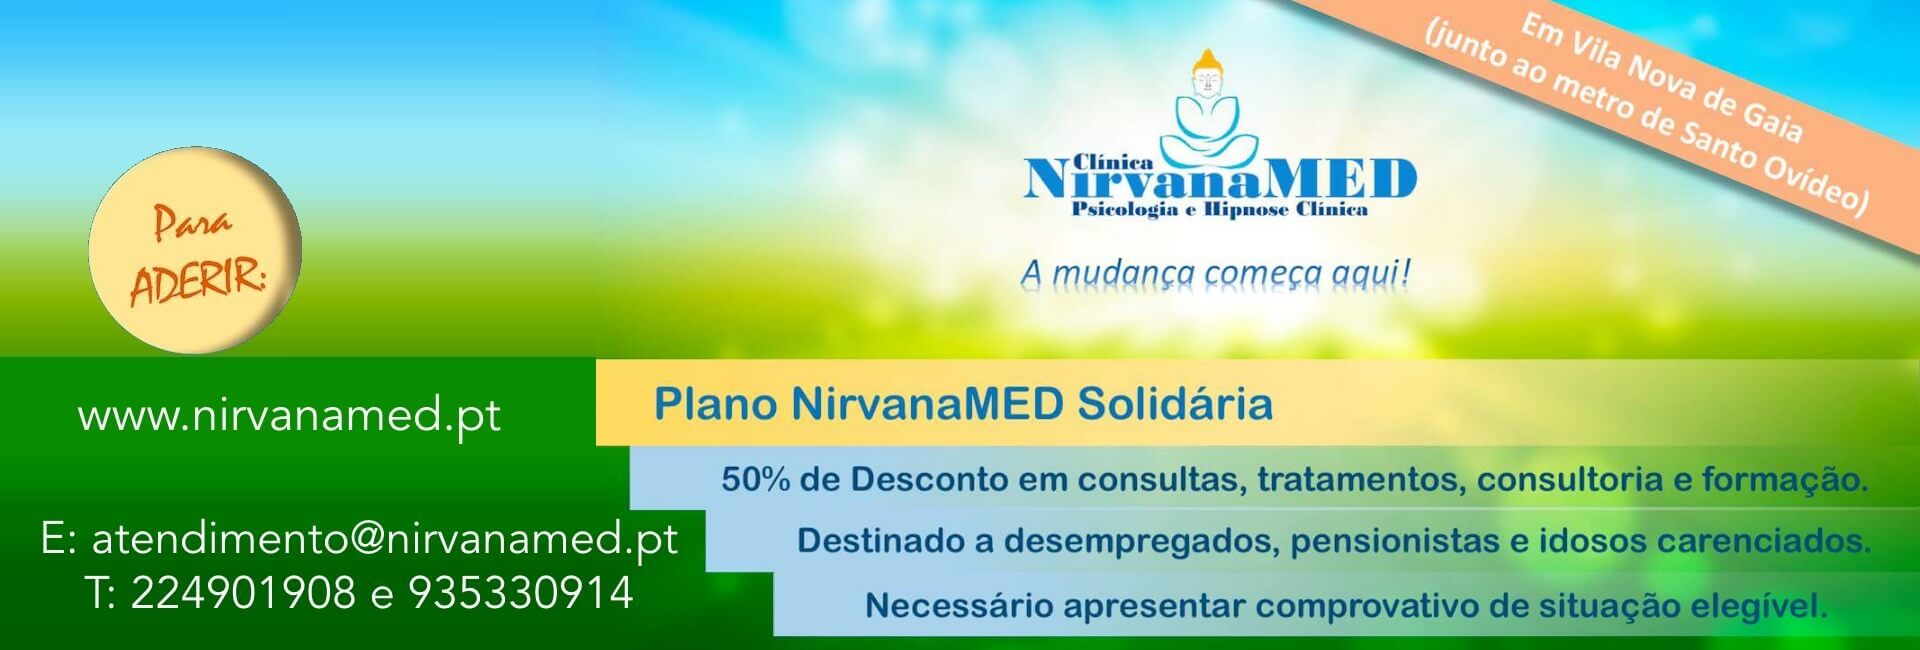 nirvanamed_solidario_